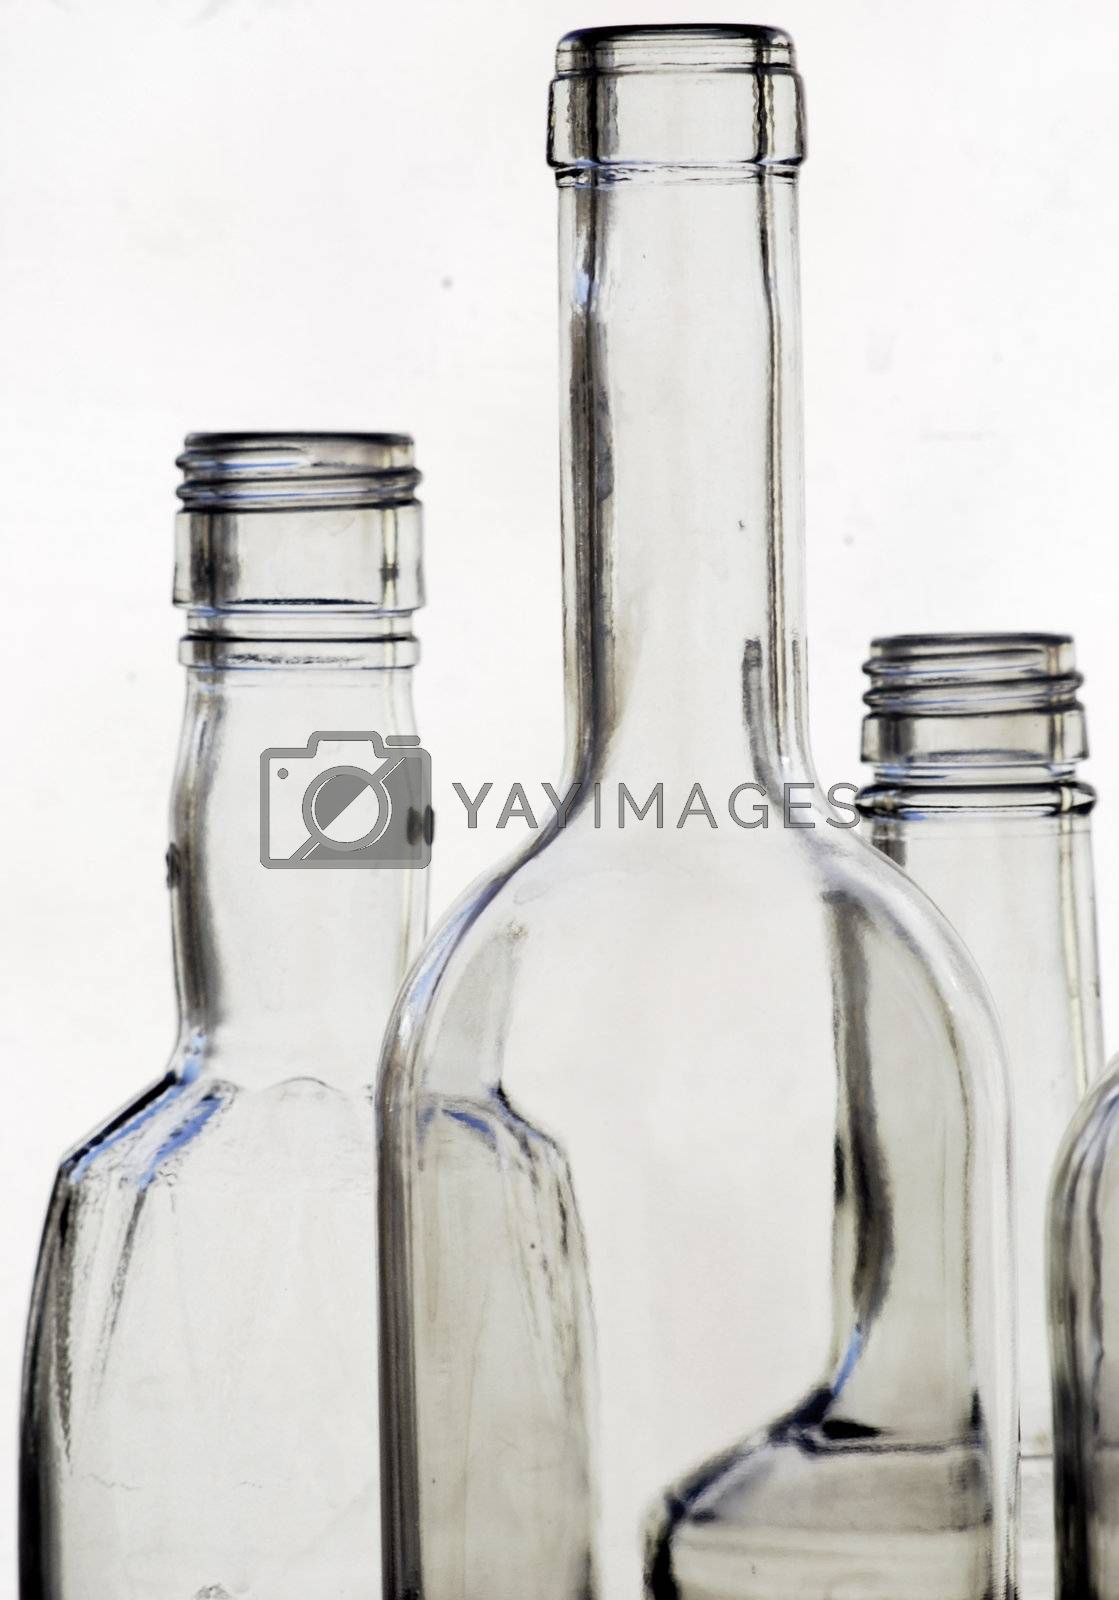 picture of glass bottles